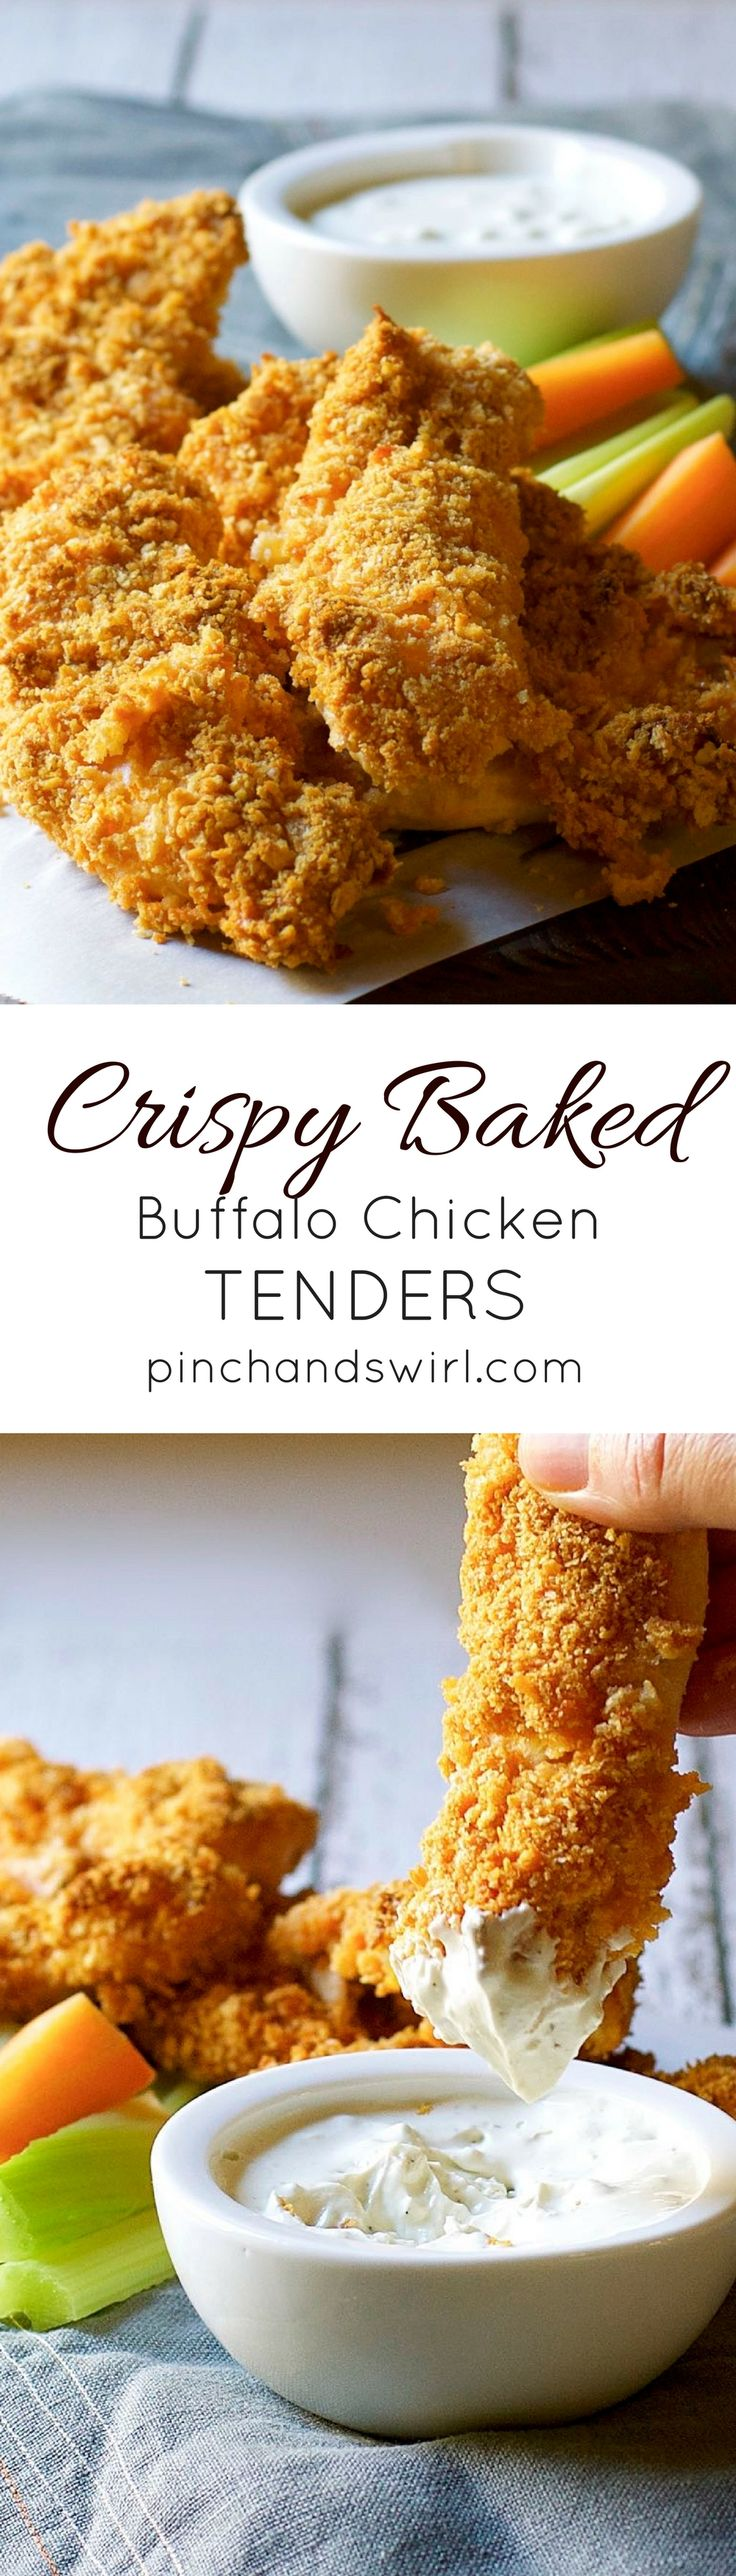 Crispy Baked Buffalo Chicken Tenders - truly crispy, knock your socks off delicious! The perfect party food! #partyfood #easyrecipes